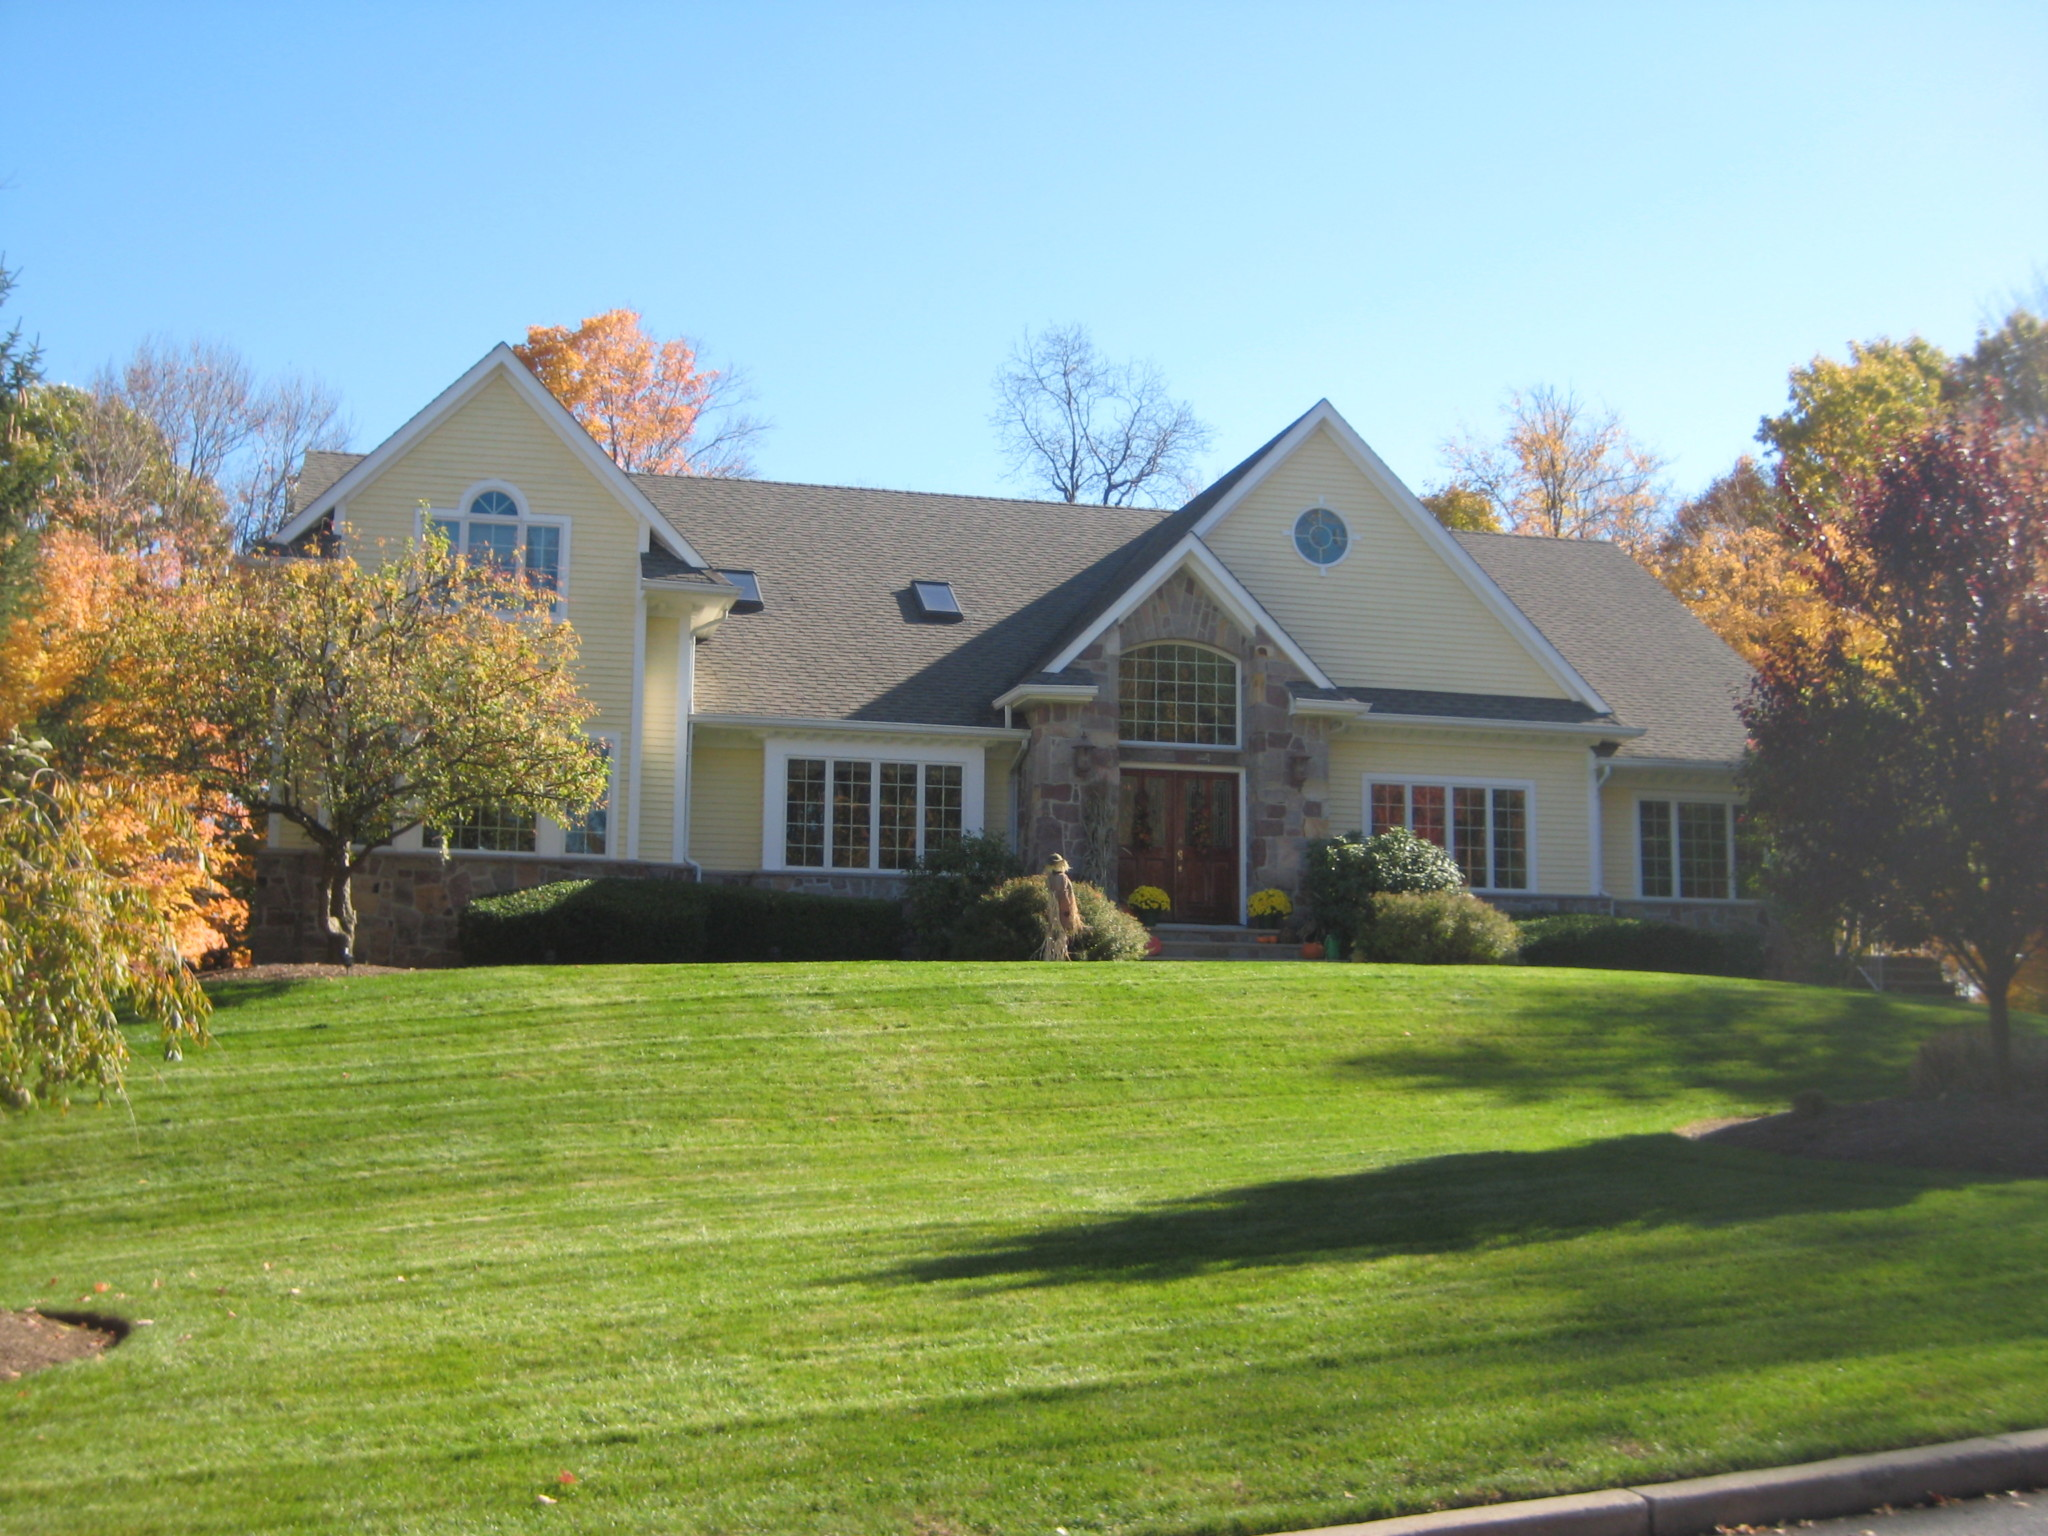 Exterior painting by CertaPro house painters in Franklin Lakes, NJ